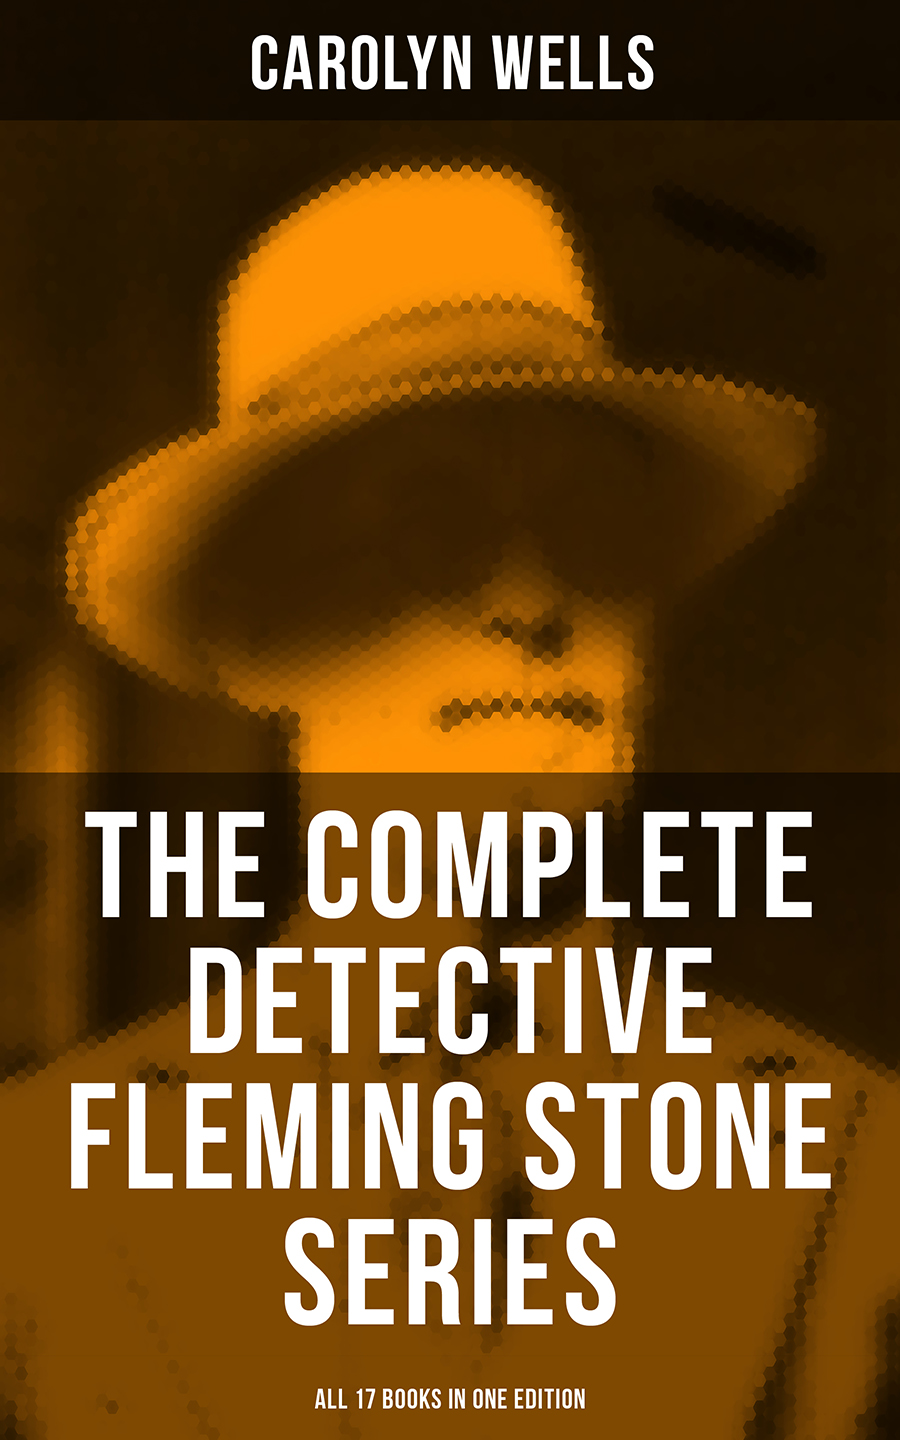 Carolyn Wells The Complete Detective Fleming Stone Series (All 17 Books in One Edition) the summer i turned pretty complete series books 1 3